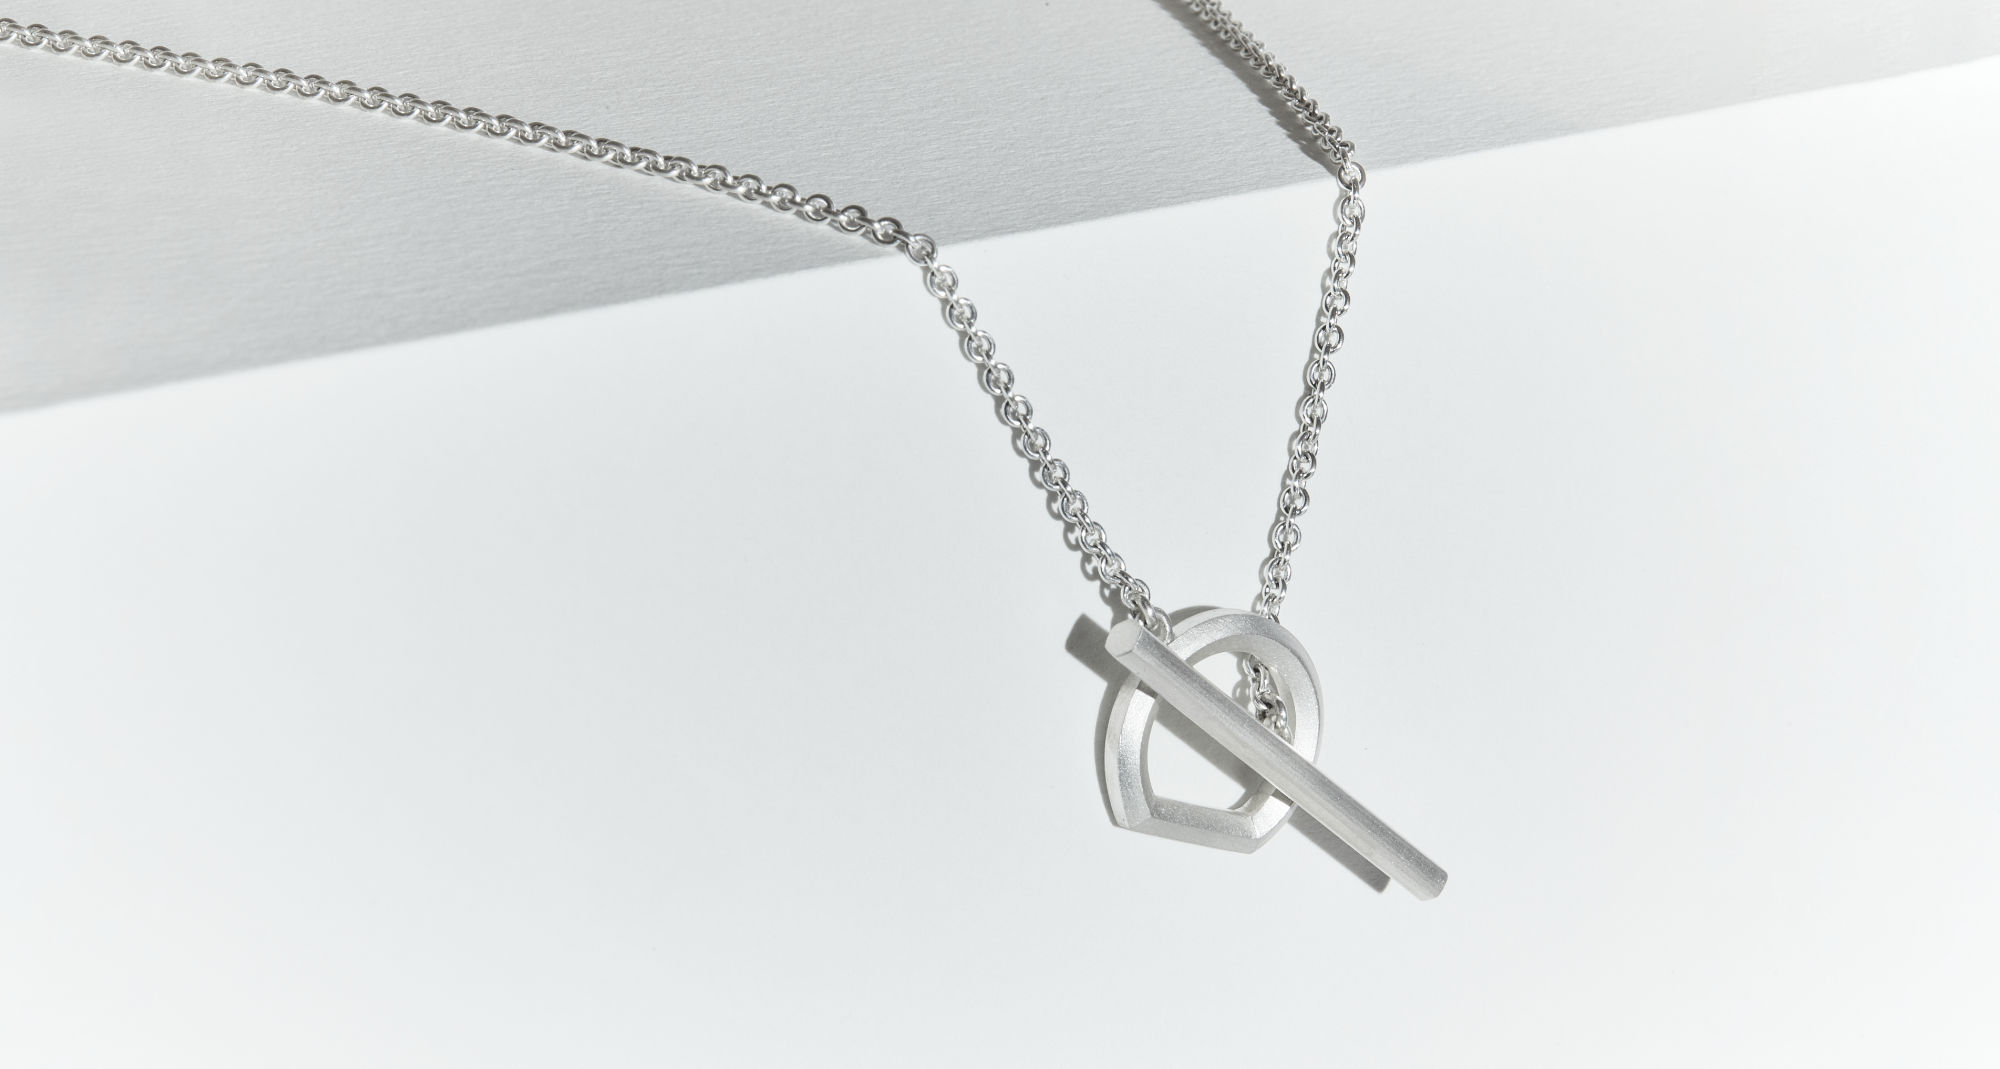 Handcrafted silver necklace from Arch collection by Makiami